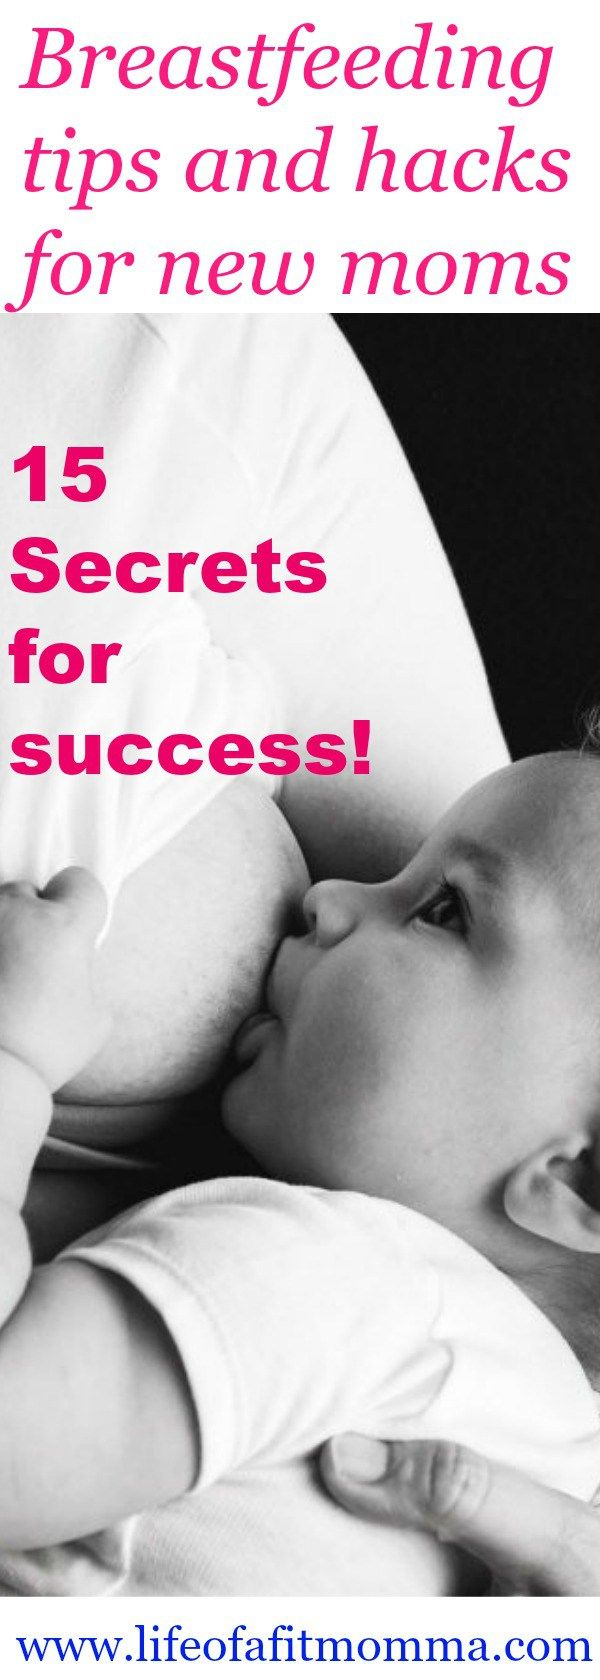 Top breastfeeding tips and hacks to help mew moms have a successful breastfeeding journey; from must have products, tips for boosting milk supply and pumping!